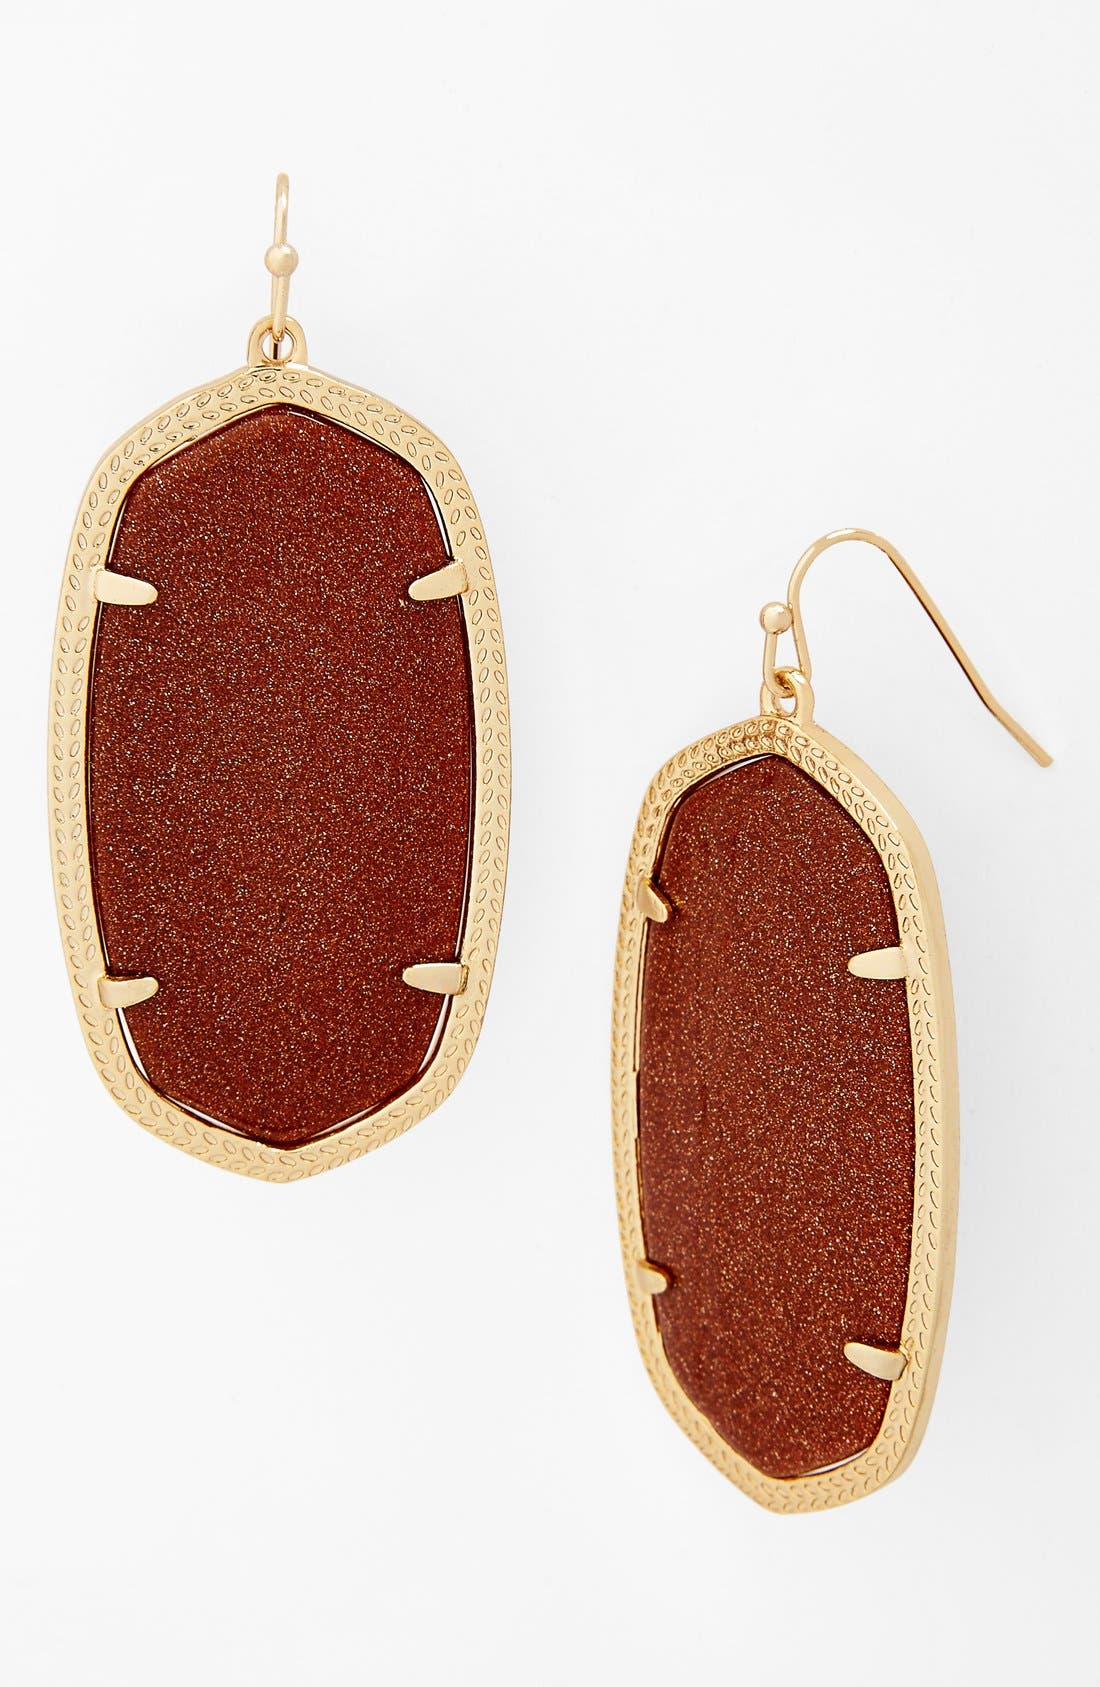 Danielle - Large Oval Statement Earrings,                             Main thumbnail 45, color,